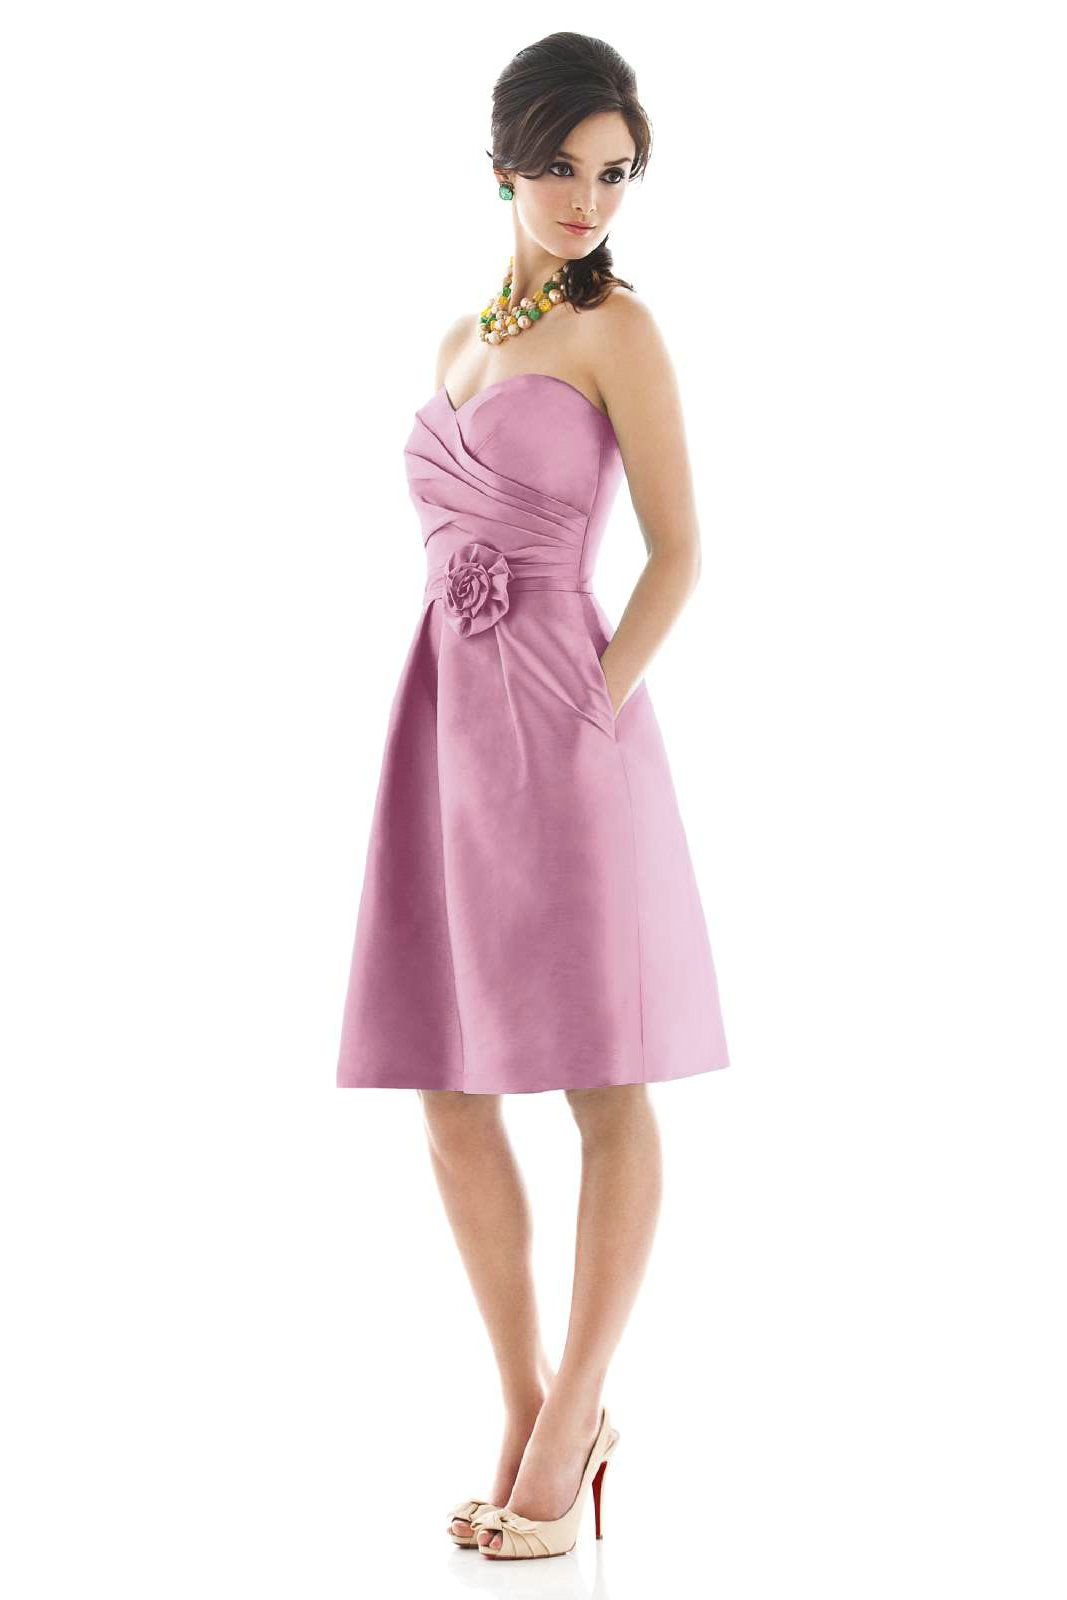 Lilac bridesmaid dresses buy cheap lilac satin fabulous alfred sung bridesmaids by dessy strapless cocktail length peau de soie dress with sweetheart pleated surplice bodice matching belt and flower detail at ombrellifo Choice Image